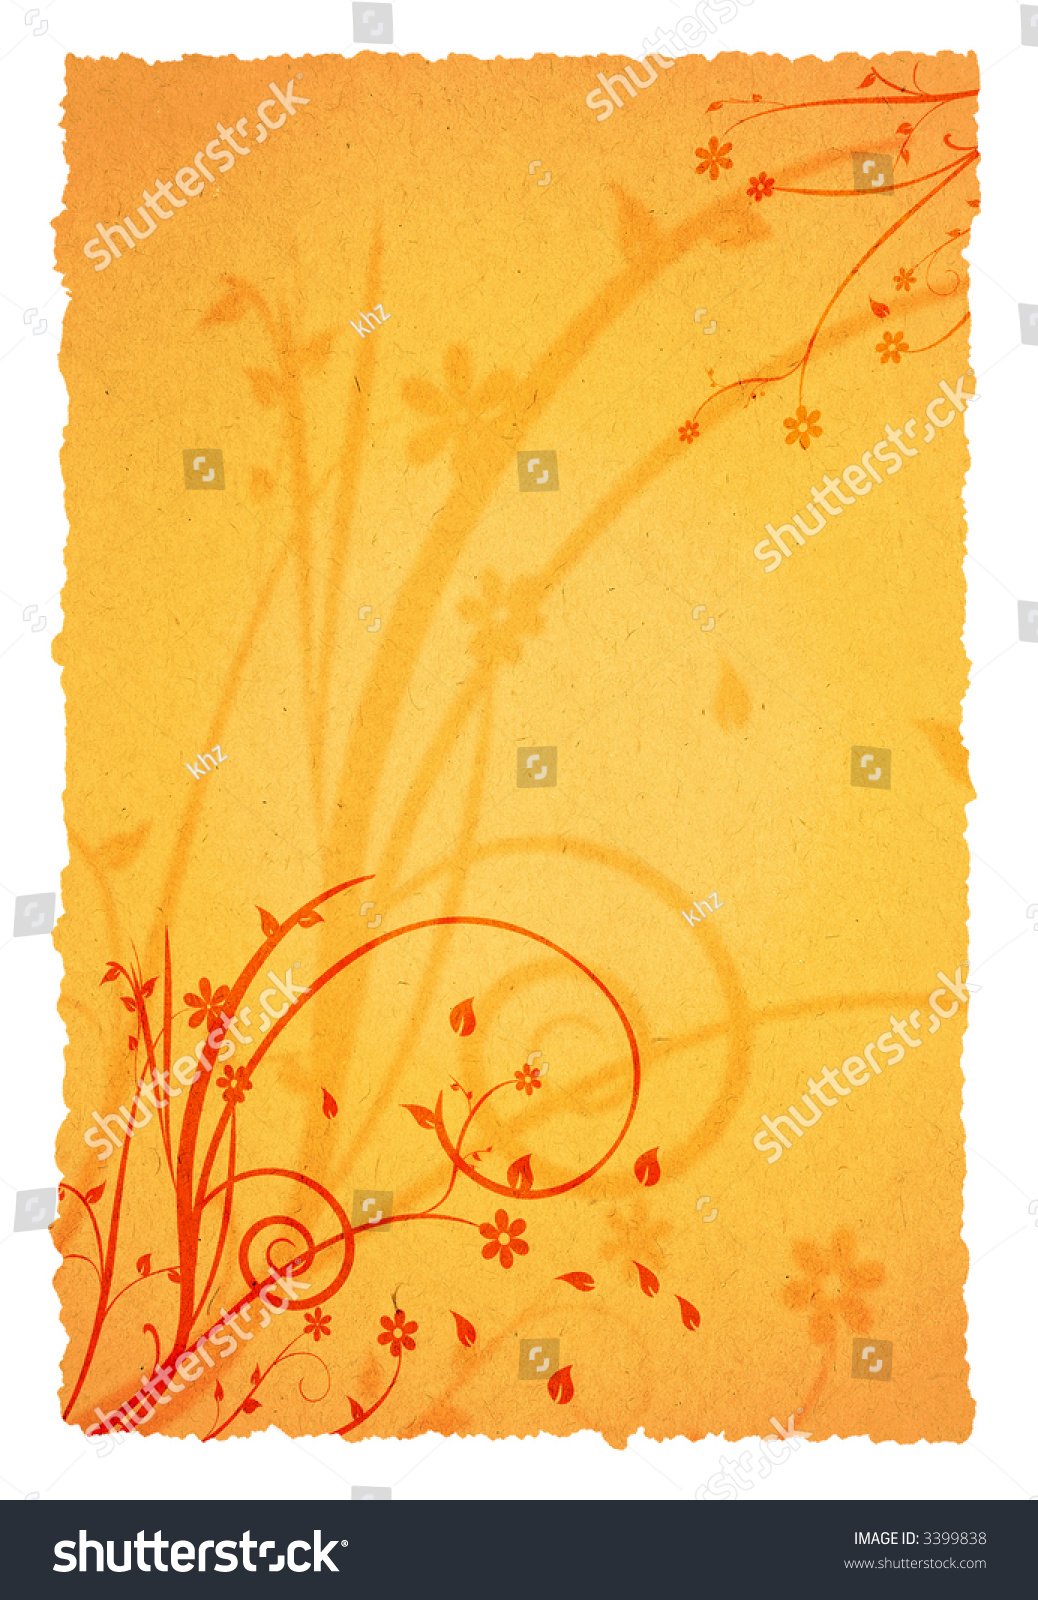 old page background ornaments your messages stock illustration